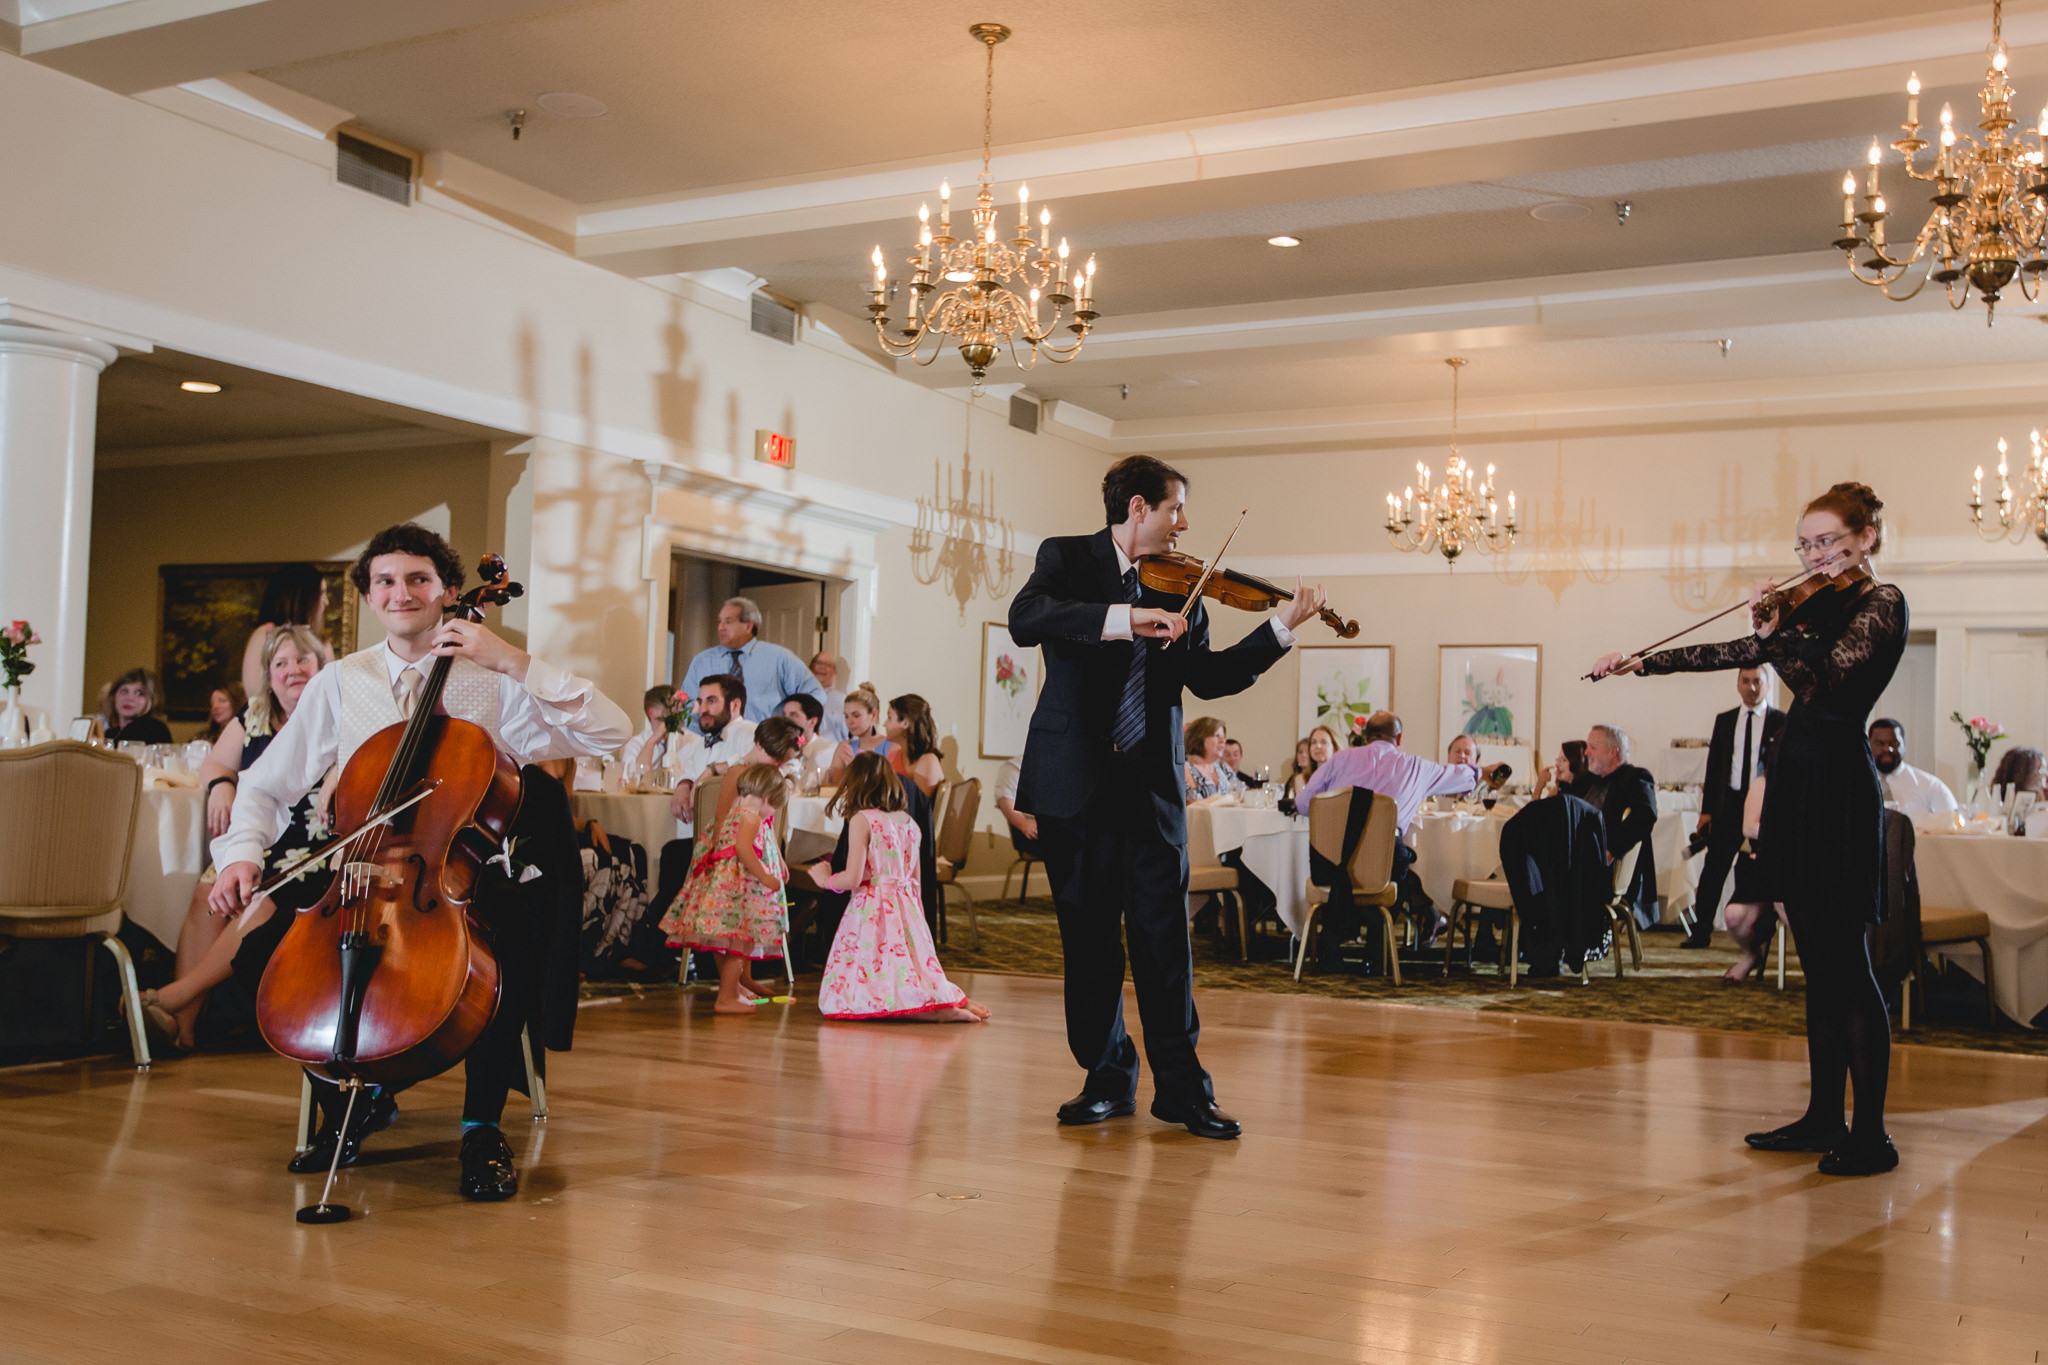 String trio performs at Shannopin Country Club wedding reception